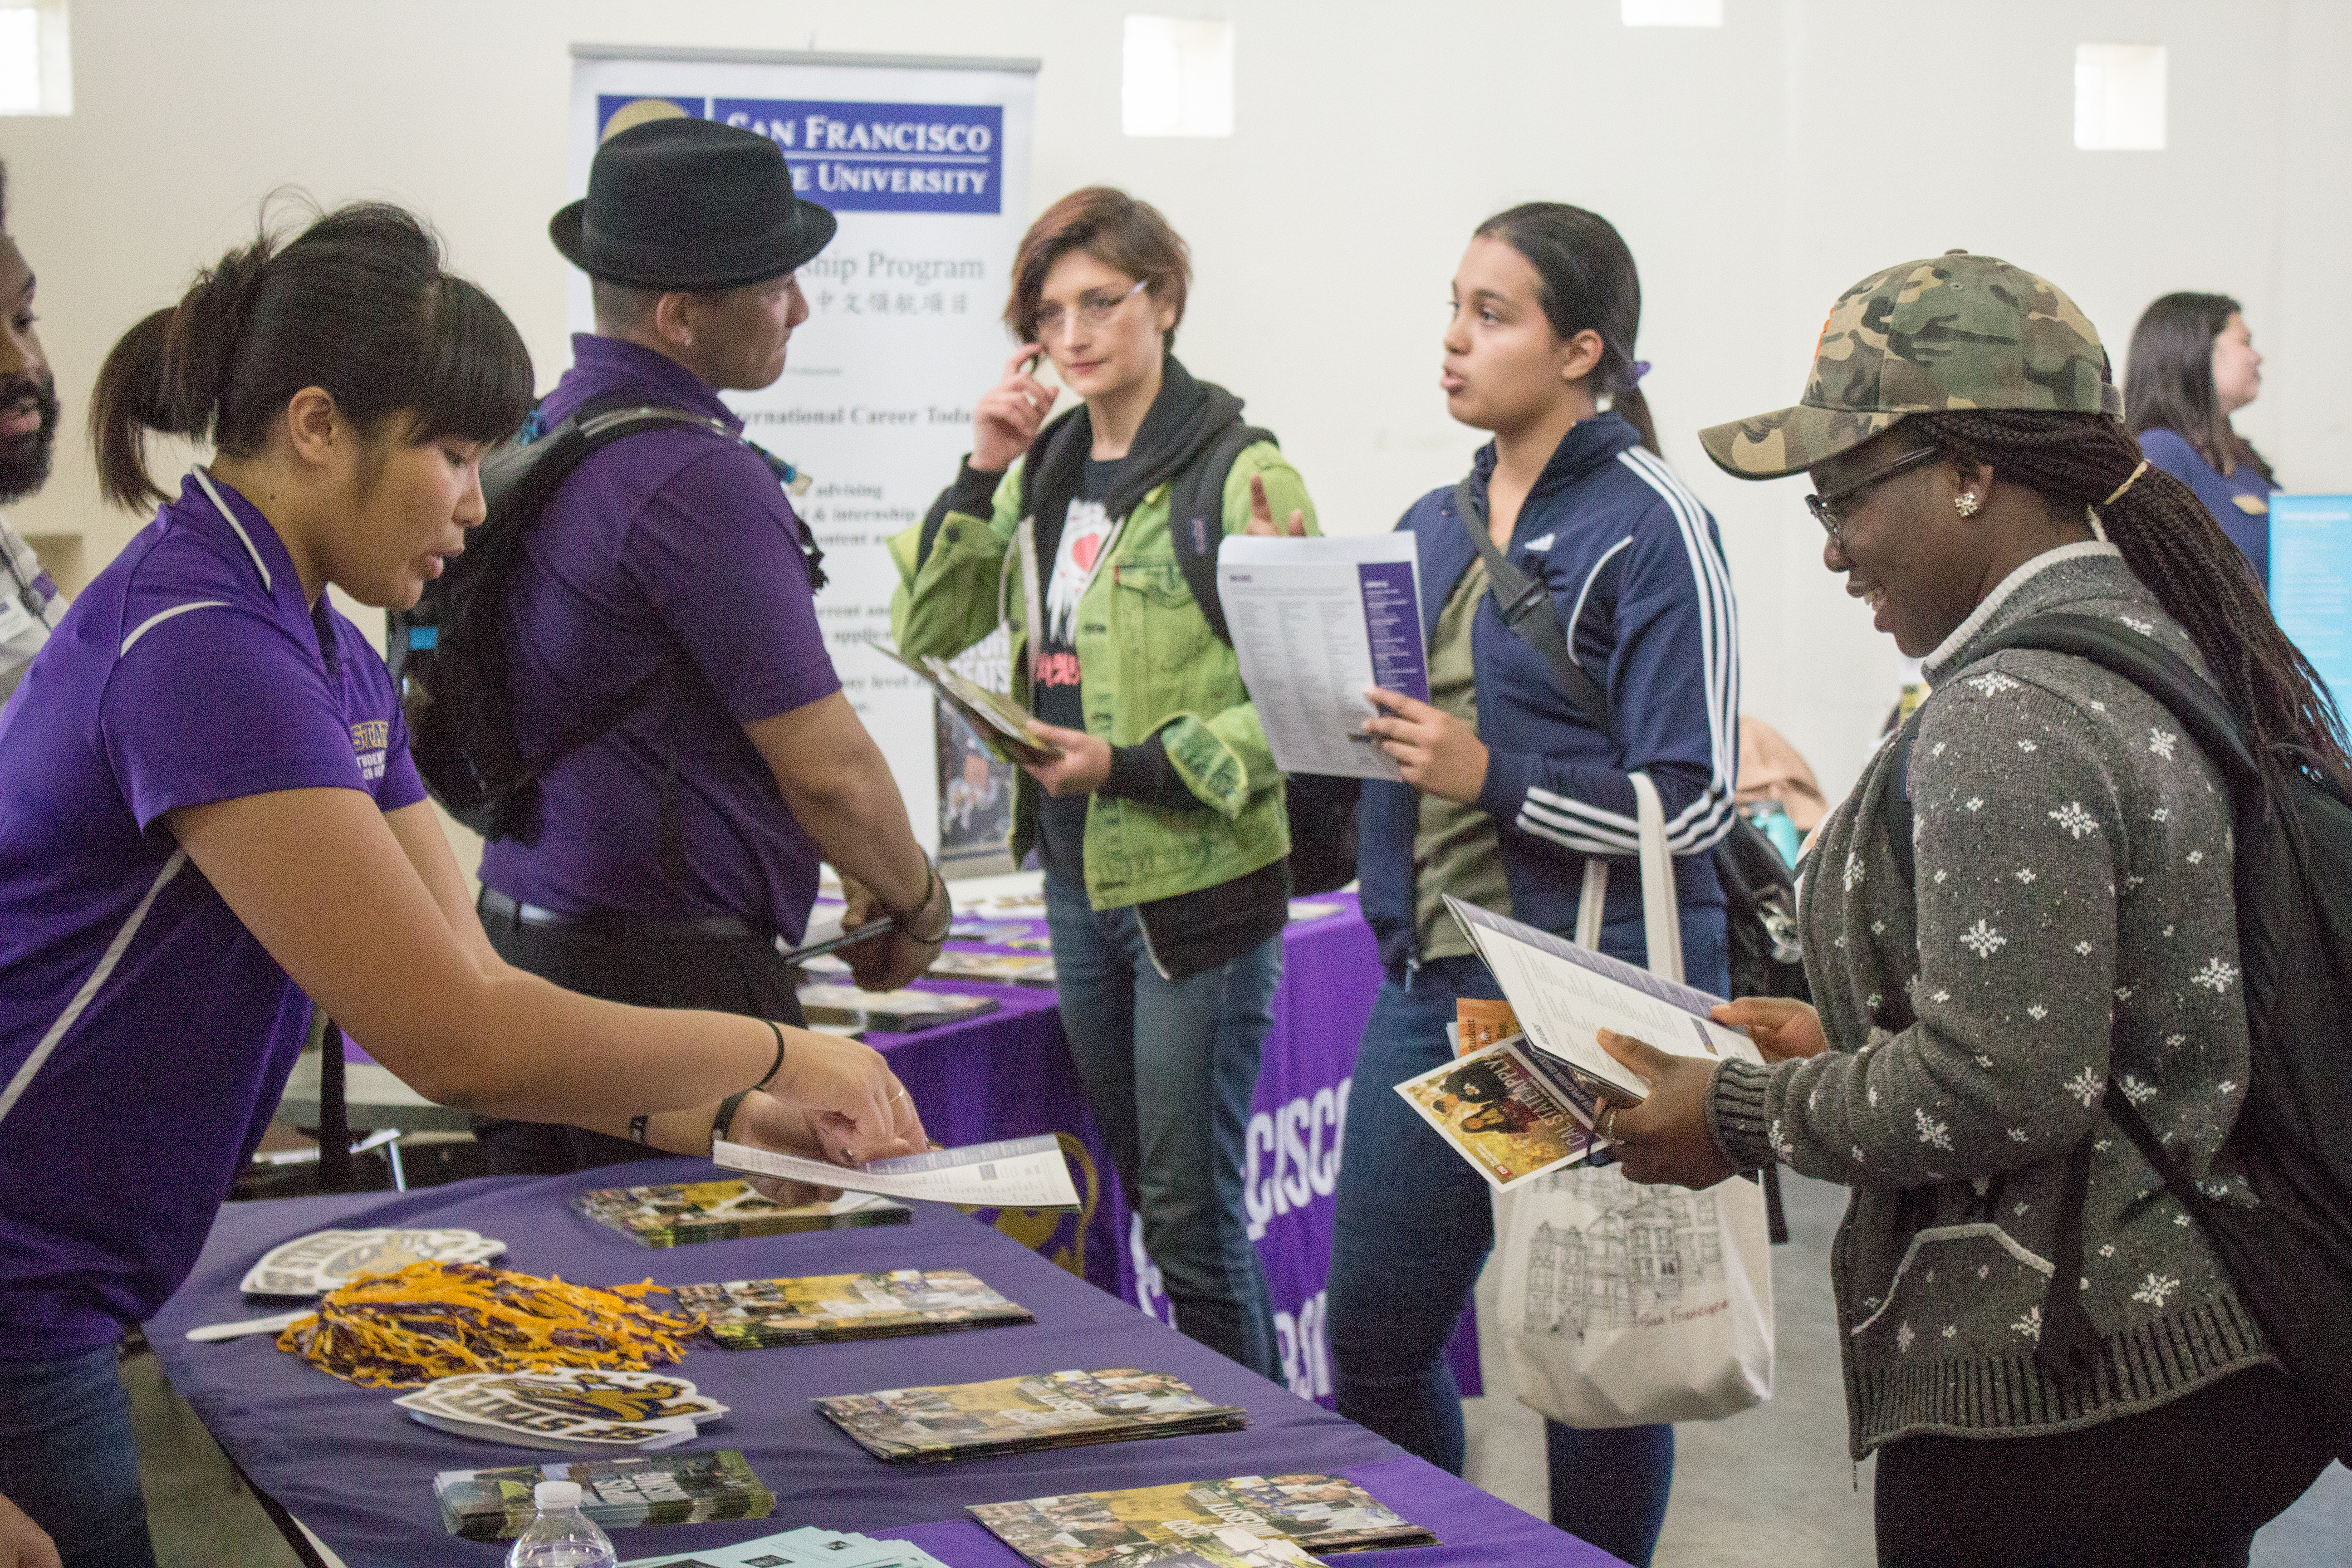 San Francisco State  University Outreach Specialist Tabitha Hurdle, left, provides school information for City College student Stellamaris Nwihim, right. Photo by Peter J Suter/The Guardsman